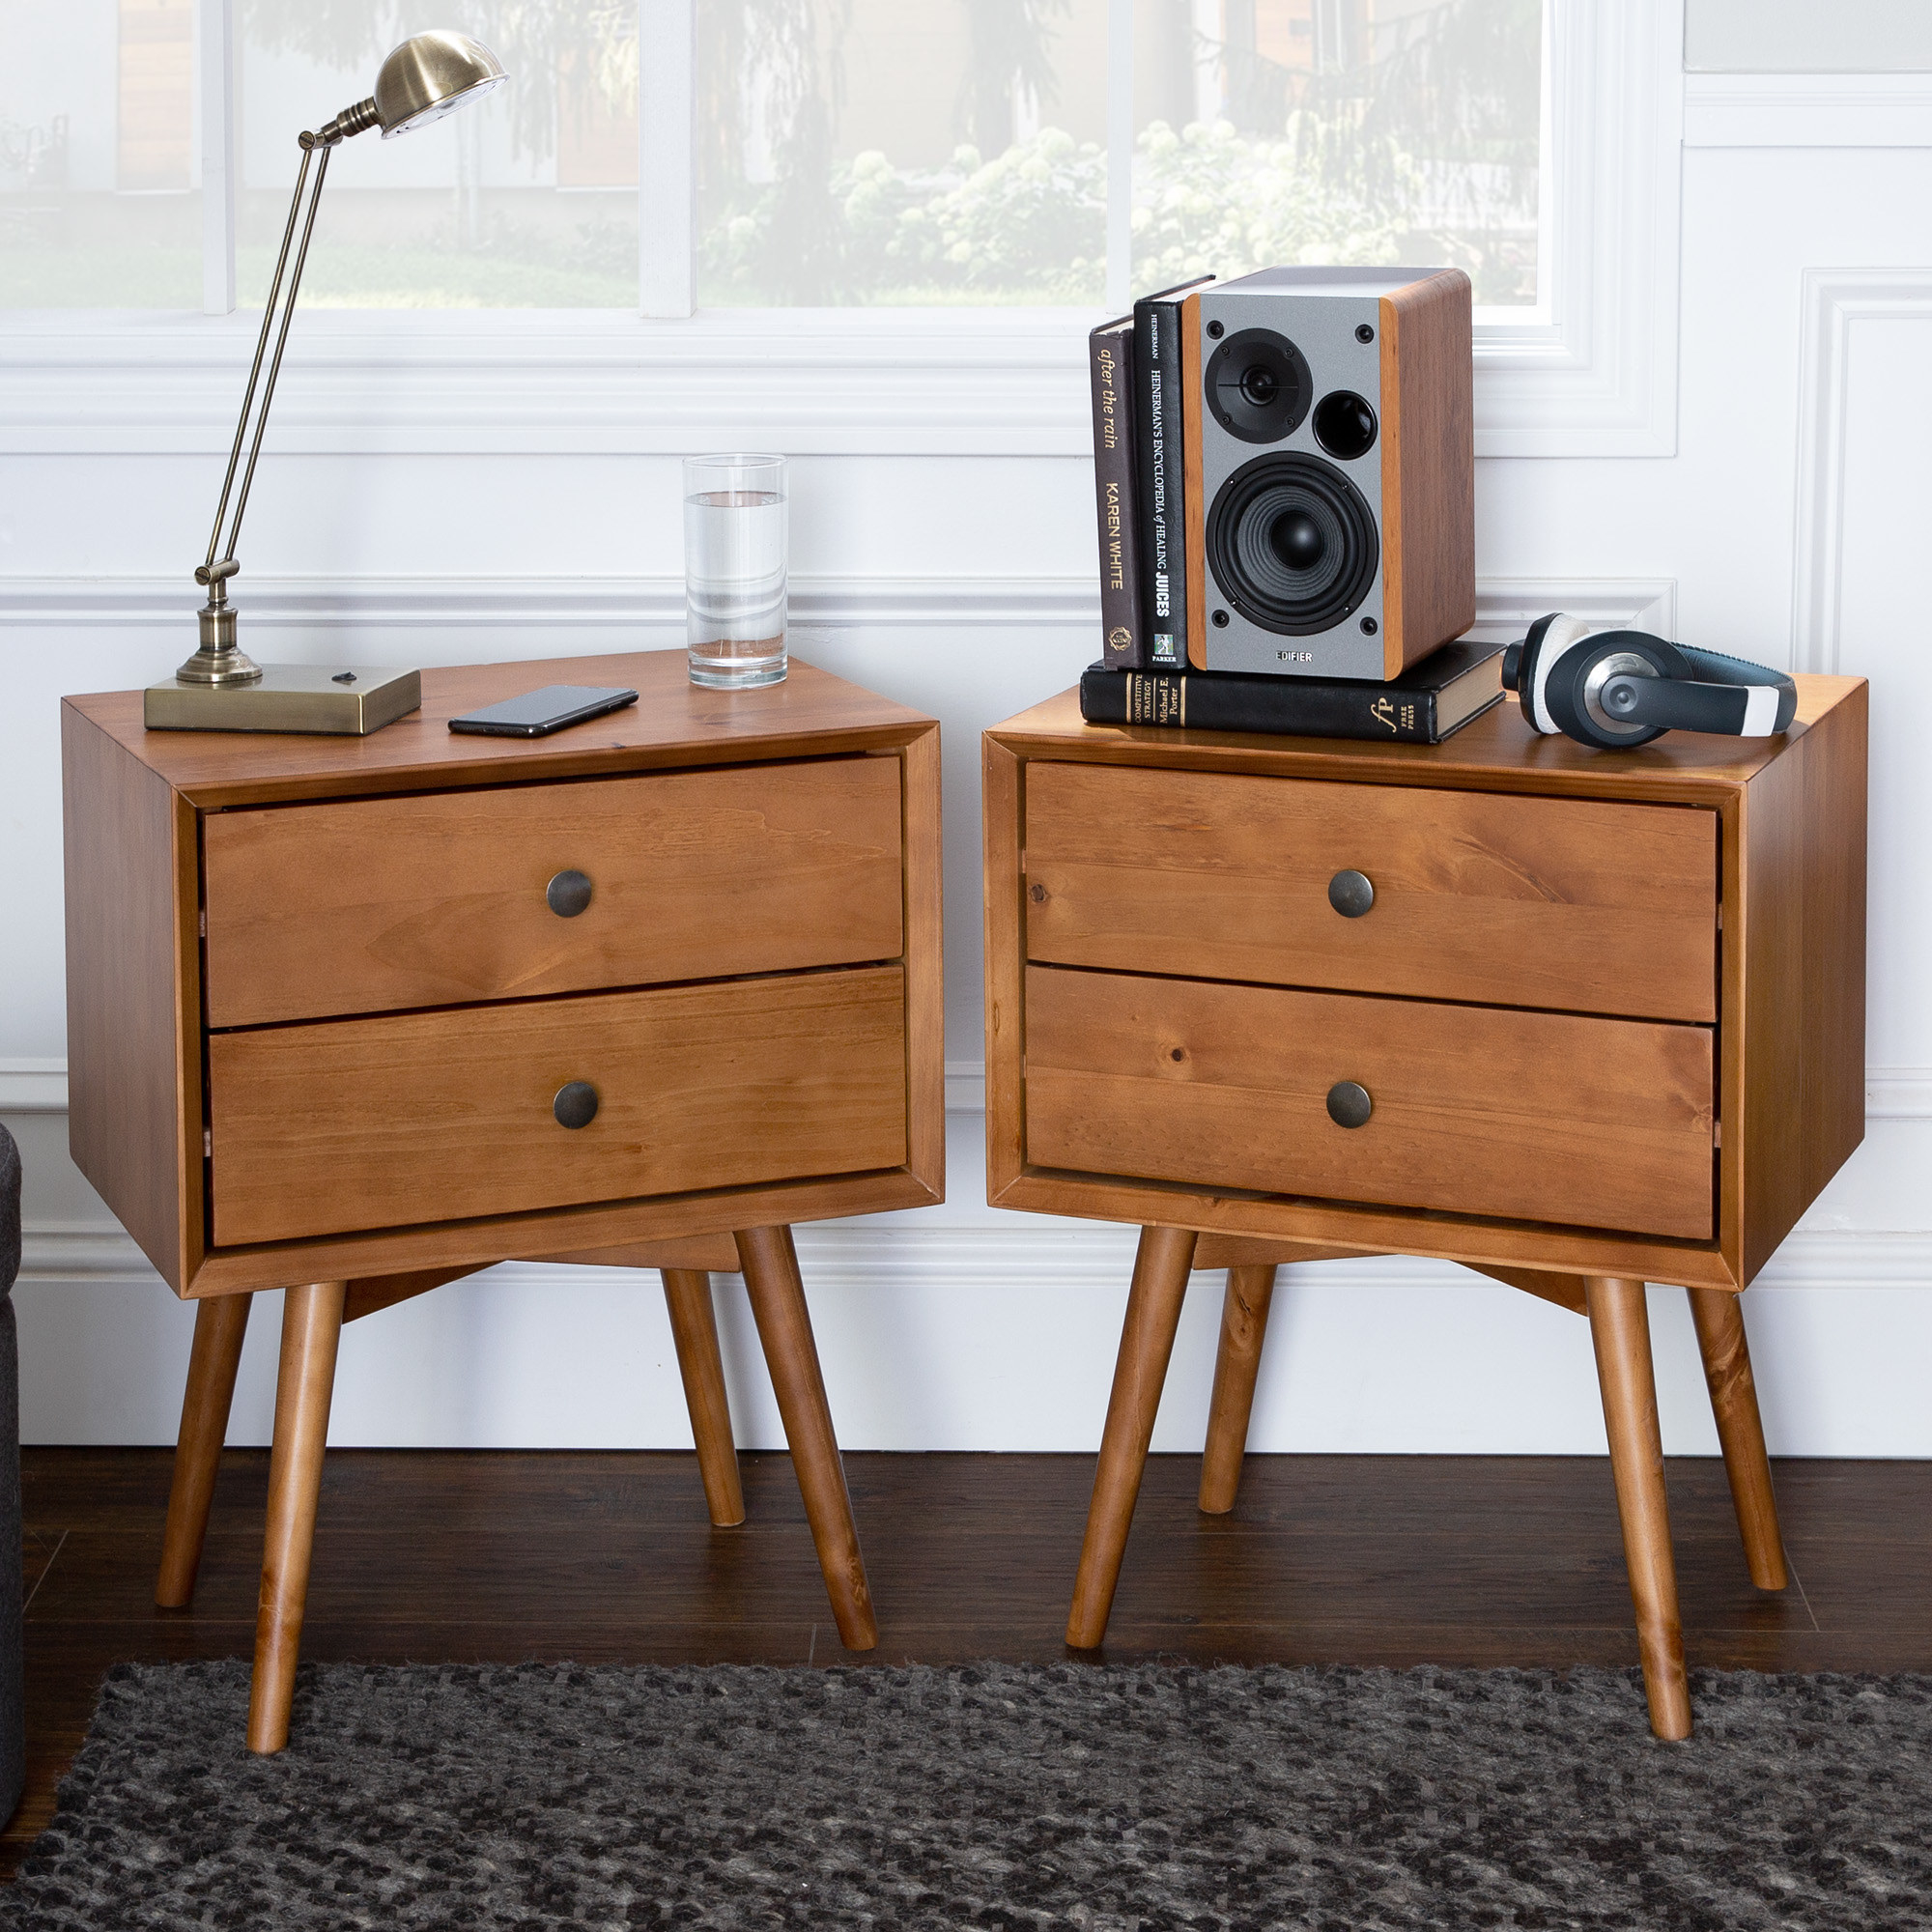 The nightstands in the color Caramel